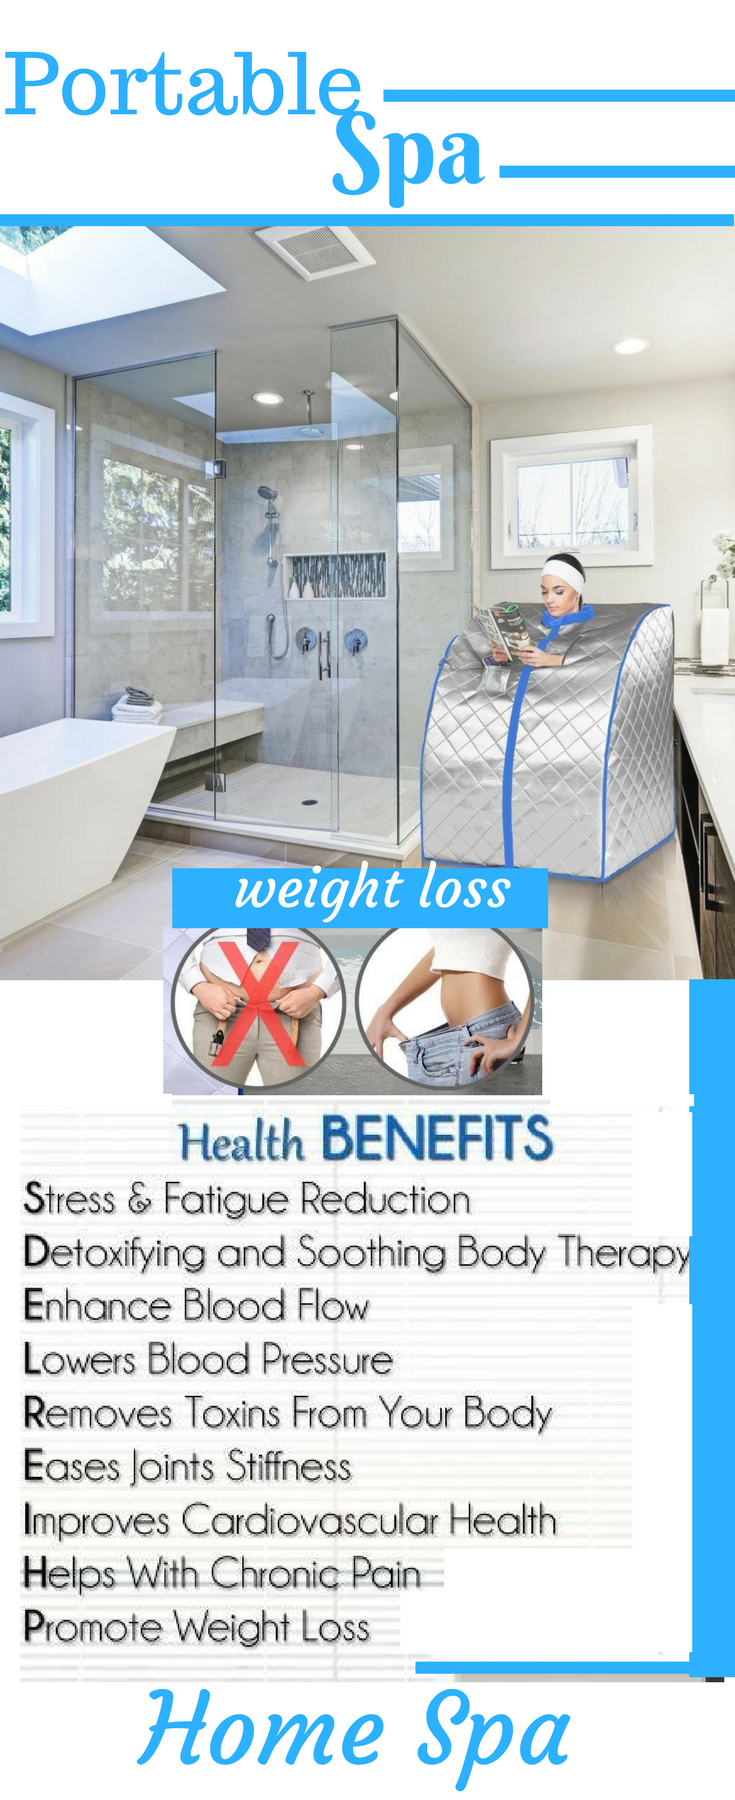 Portable Infrared Home Spa   One Person Sauna for Detox & Weight ...